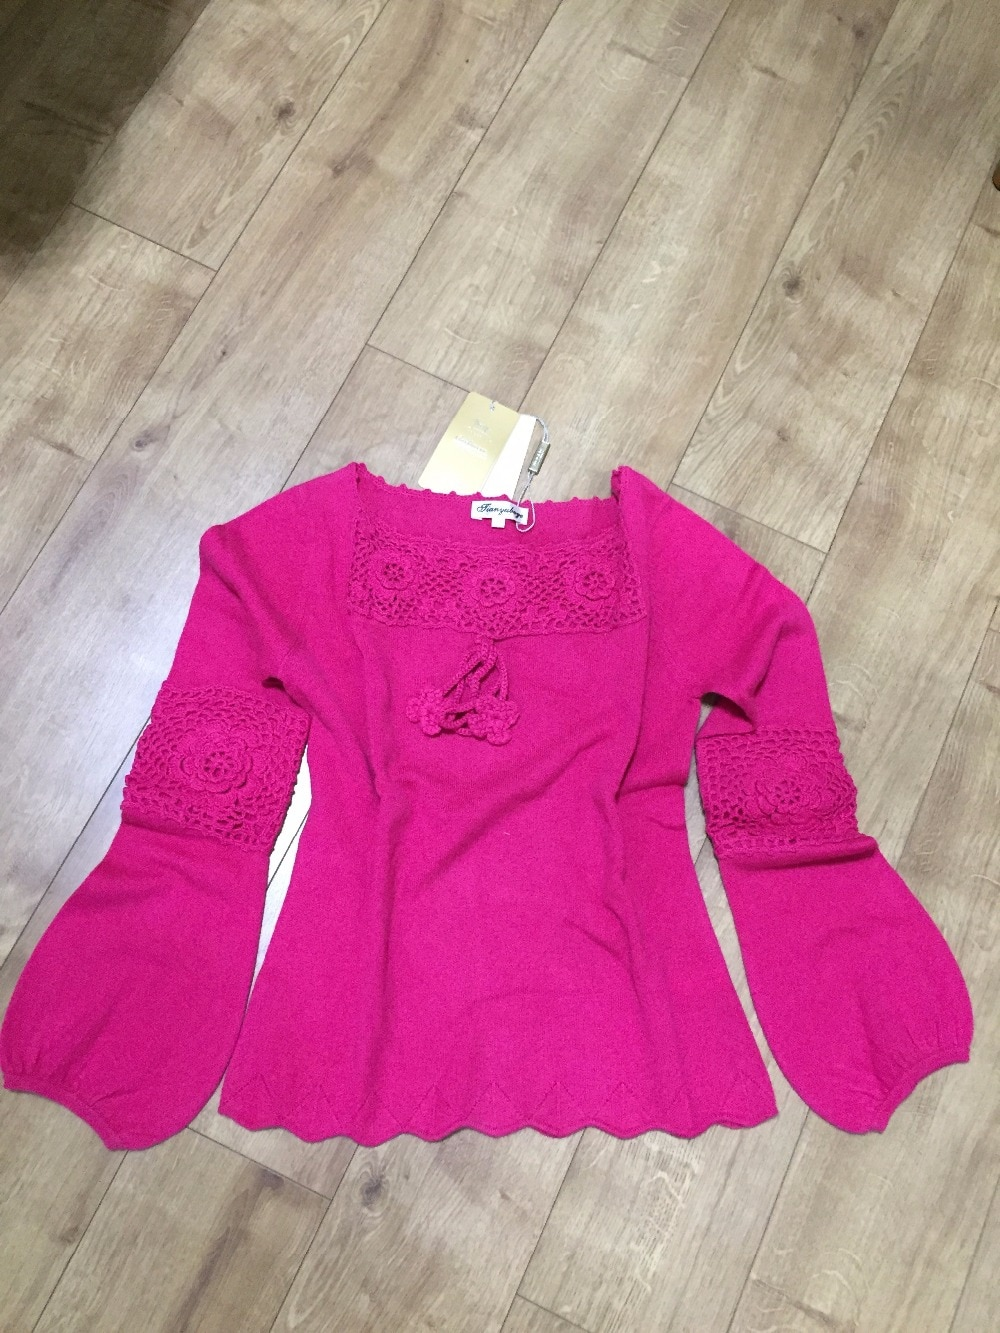 100%Cashmere Sweater Women Sweet Girl Purple Rose Red Sweaters Rose Red Natural Warm High Quality Clearance Sale Free Shipping enlarge